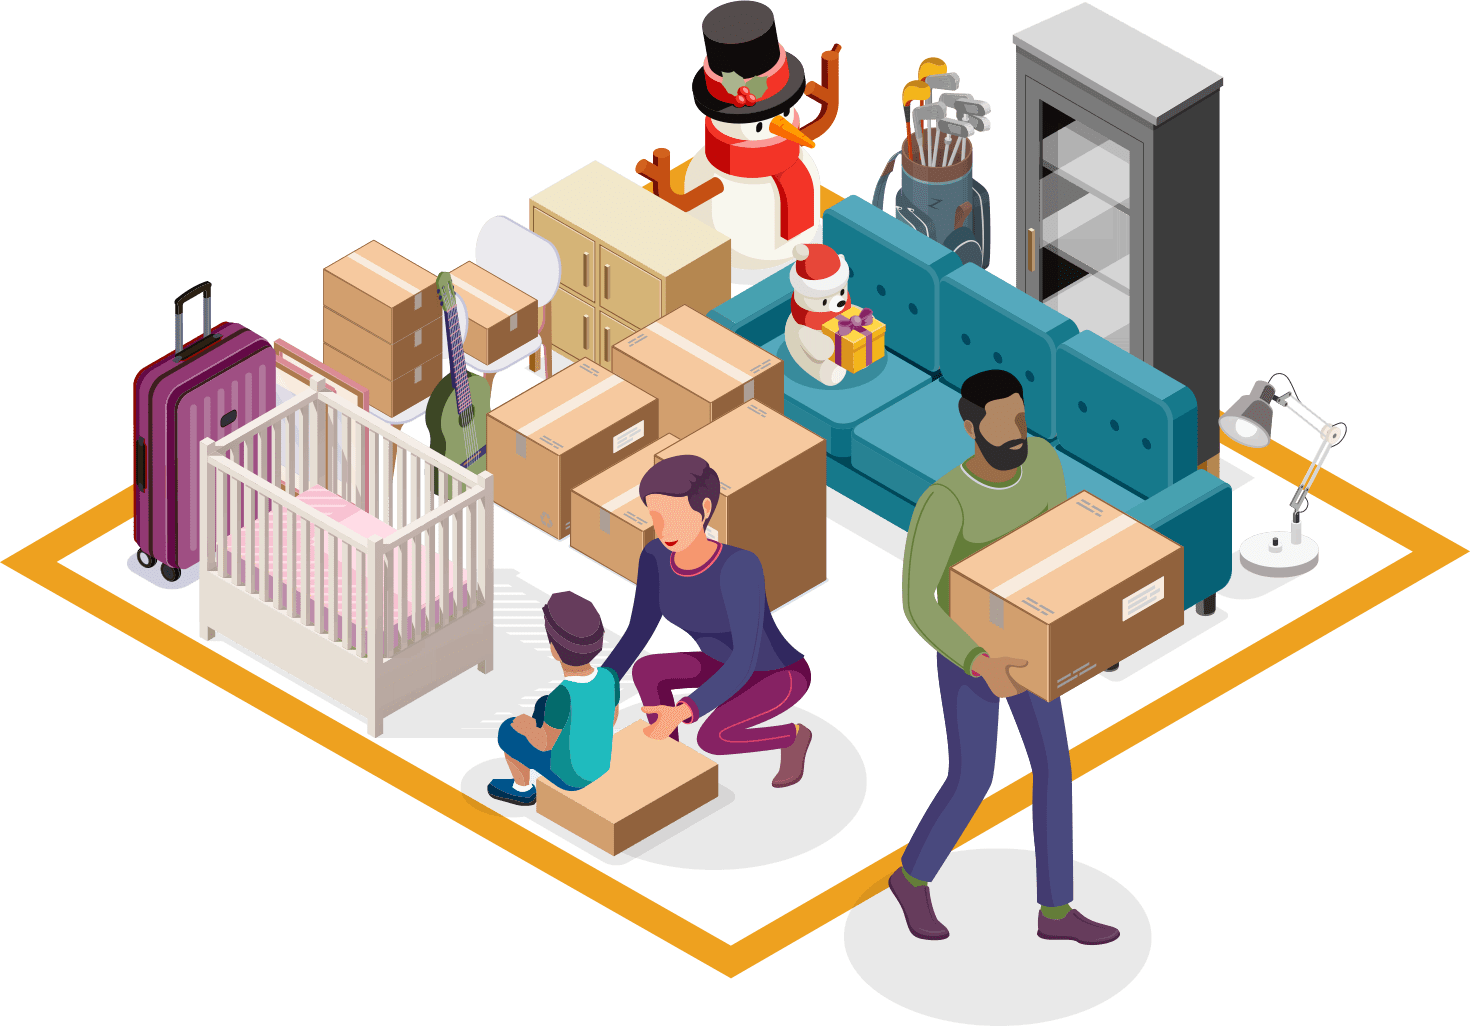 Dad and mom moving family's personal items to self storage unit